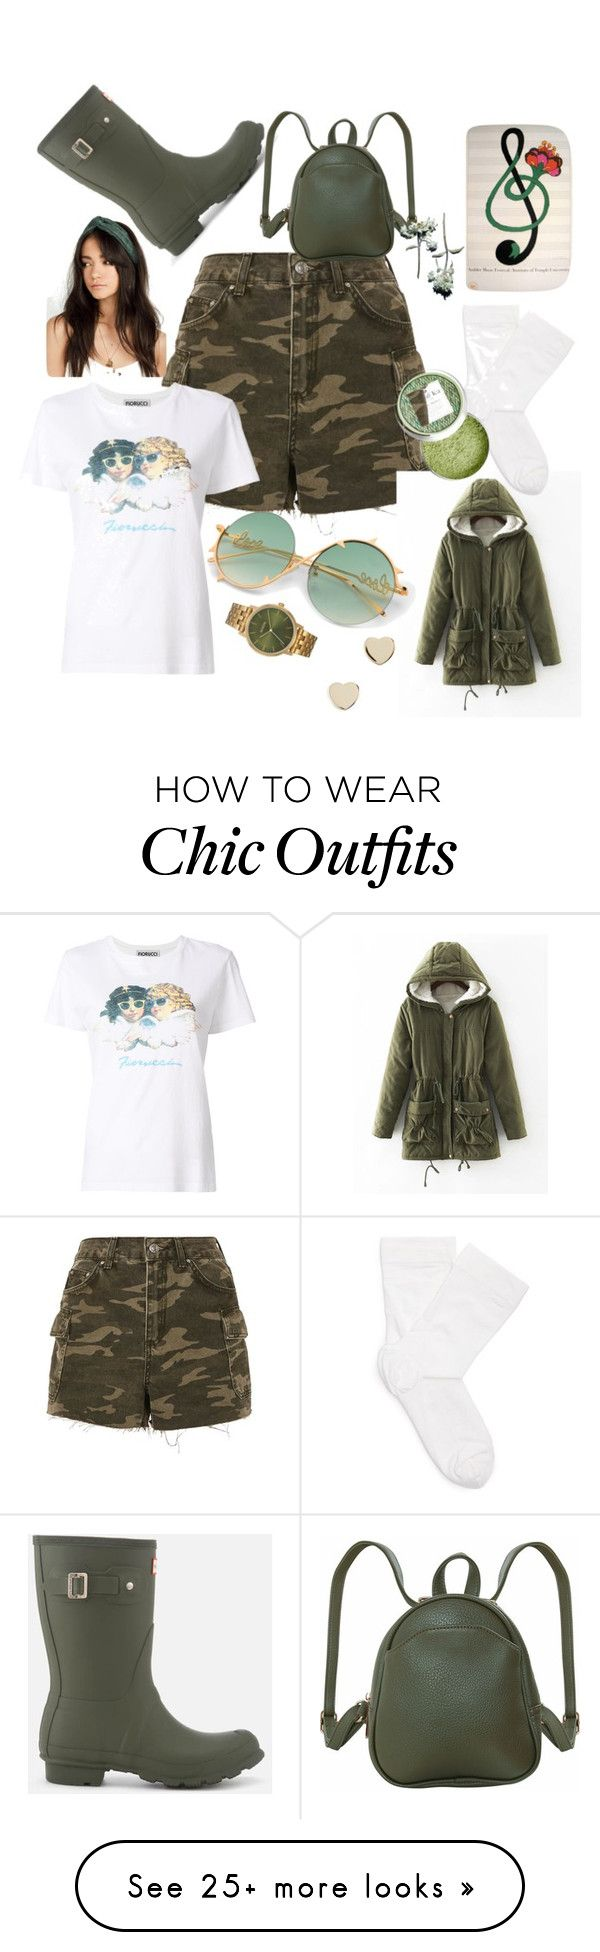 """""""Festivité !!!"""" by biks007 on Polyvore featuring Topshop, Fiorucci, Wolford, Shashi and Humble Chic"""